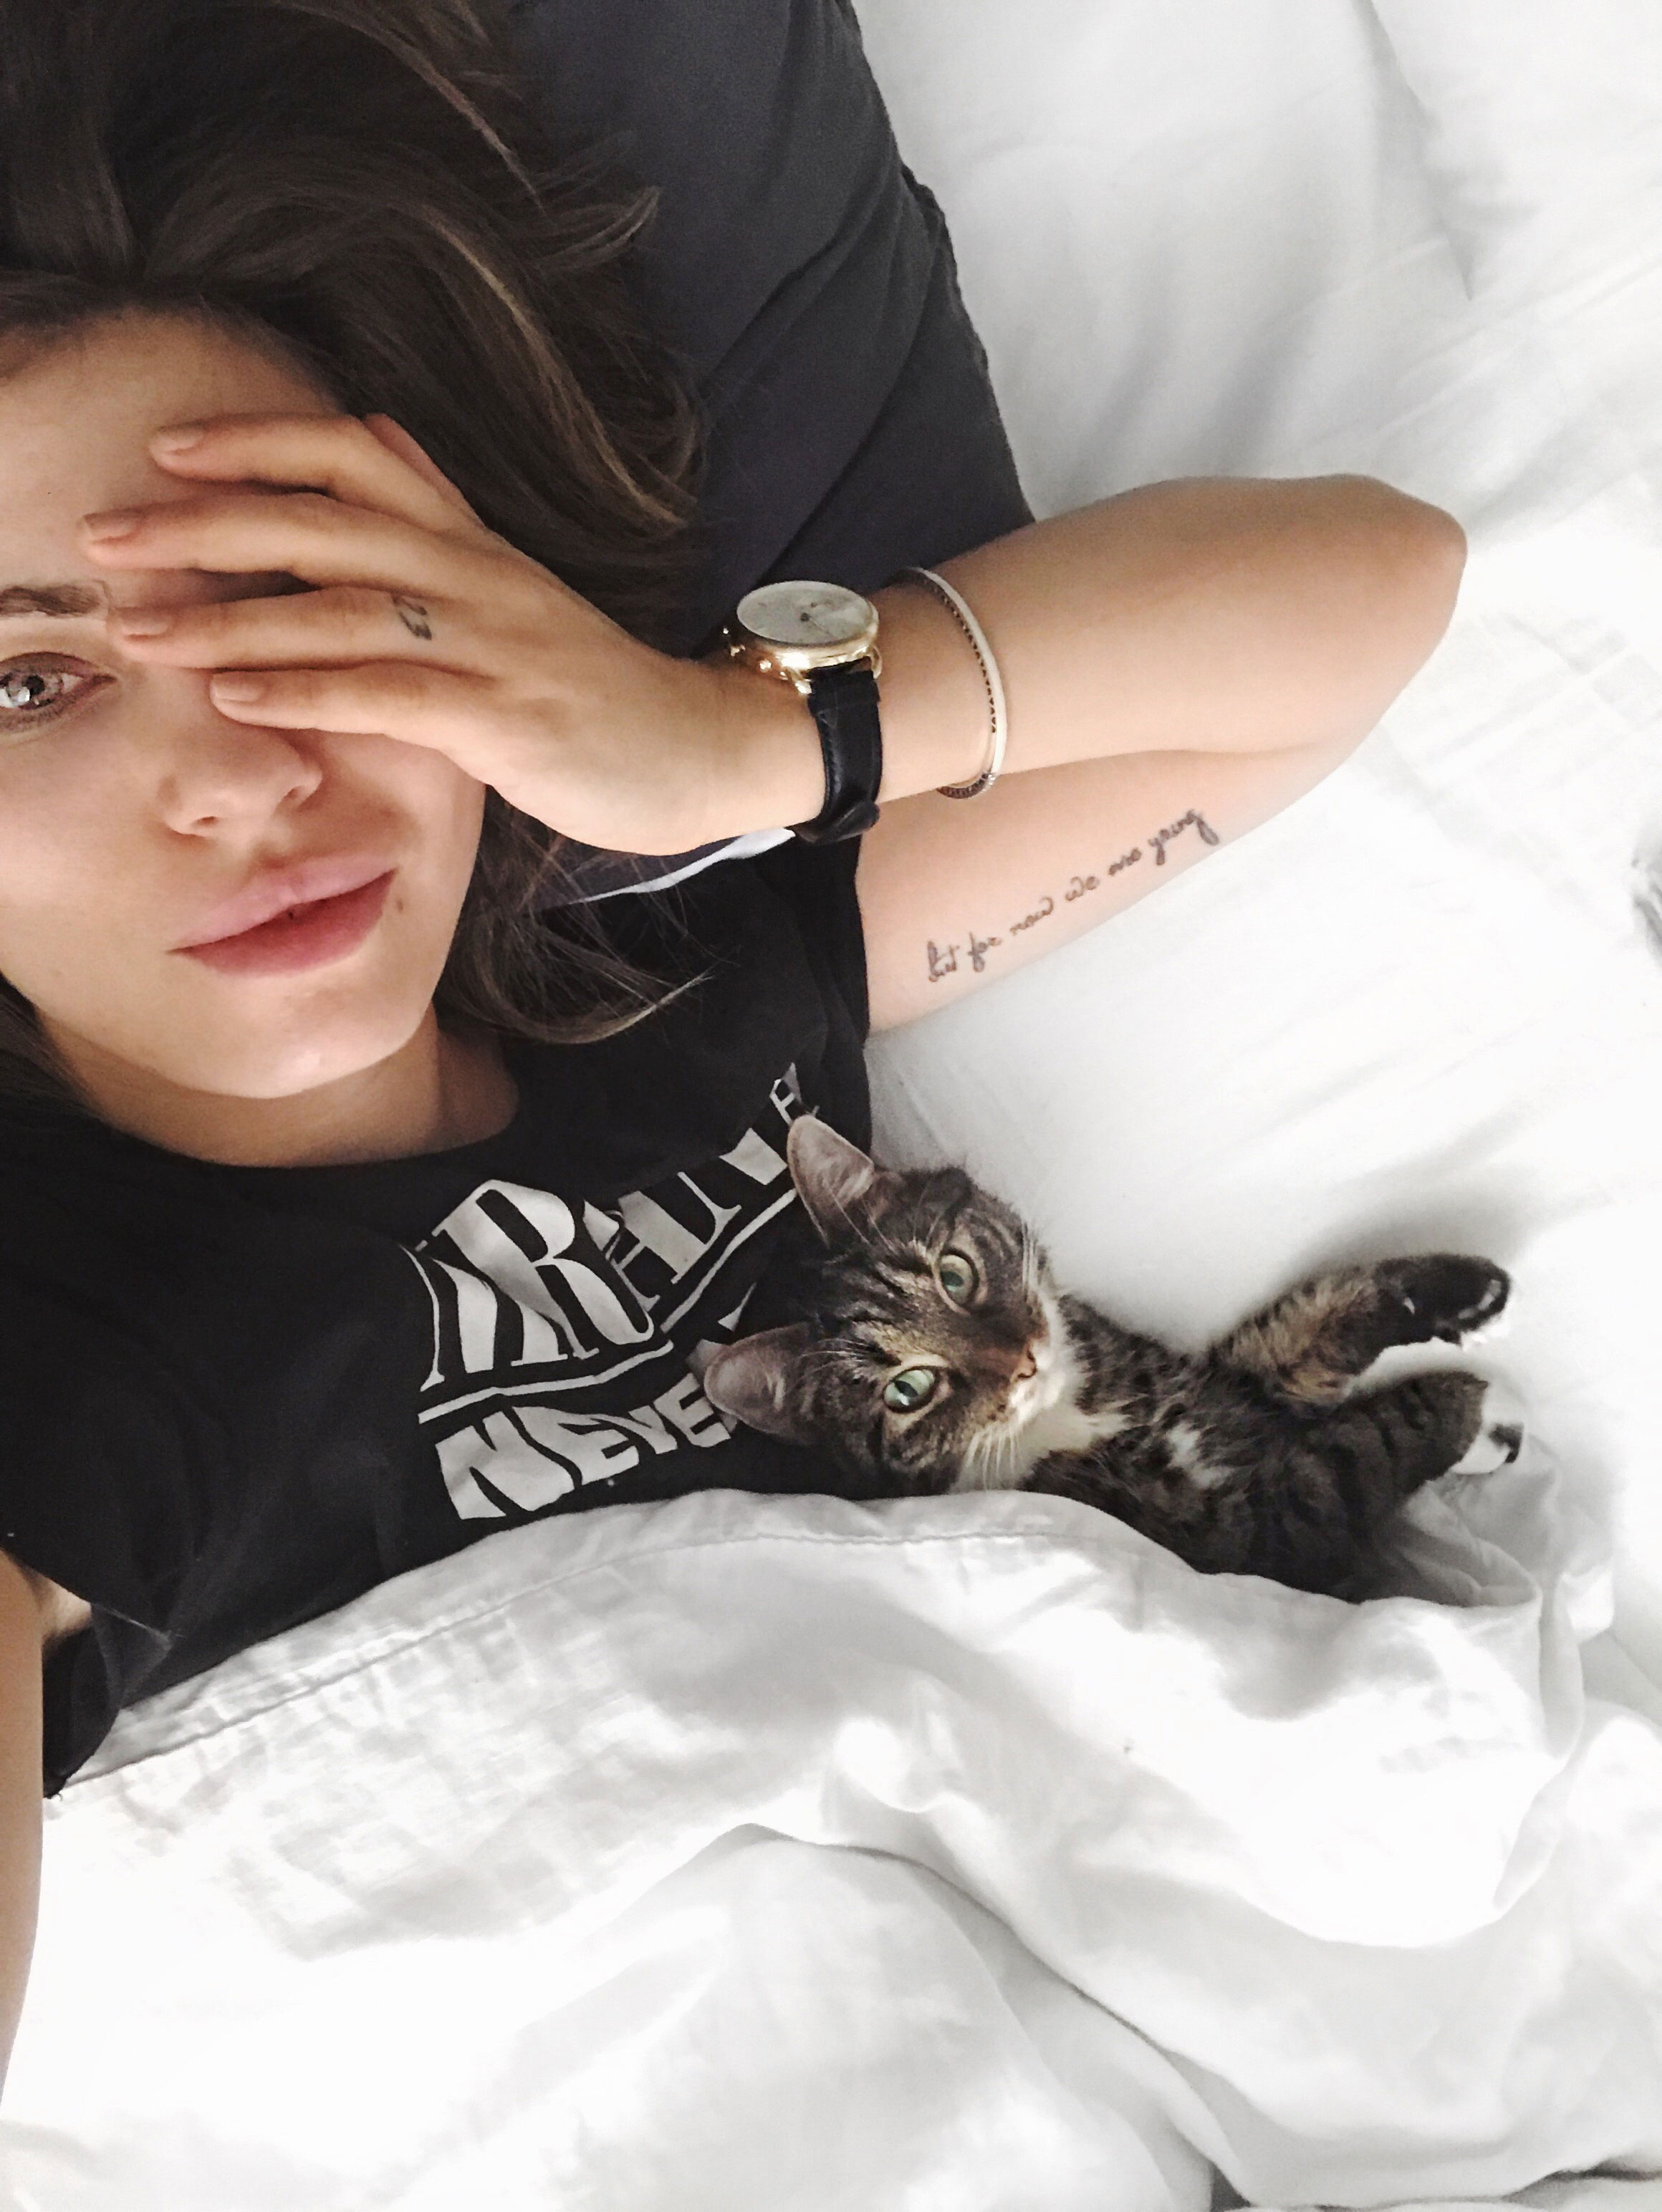 Masha Sedgwick with her cat in bed